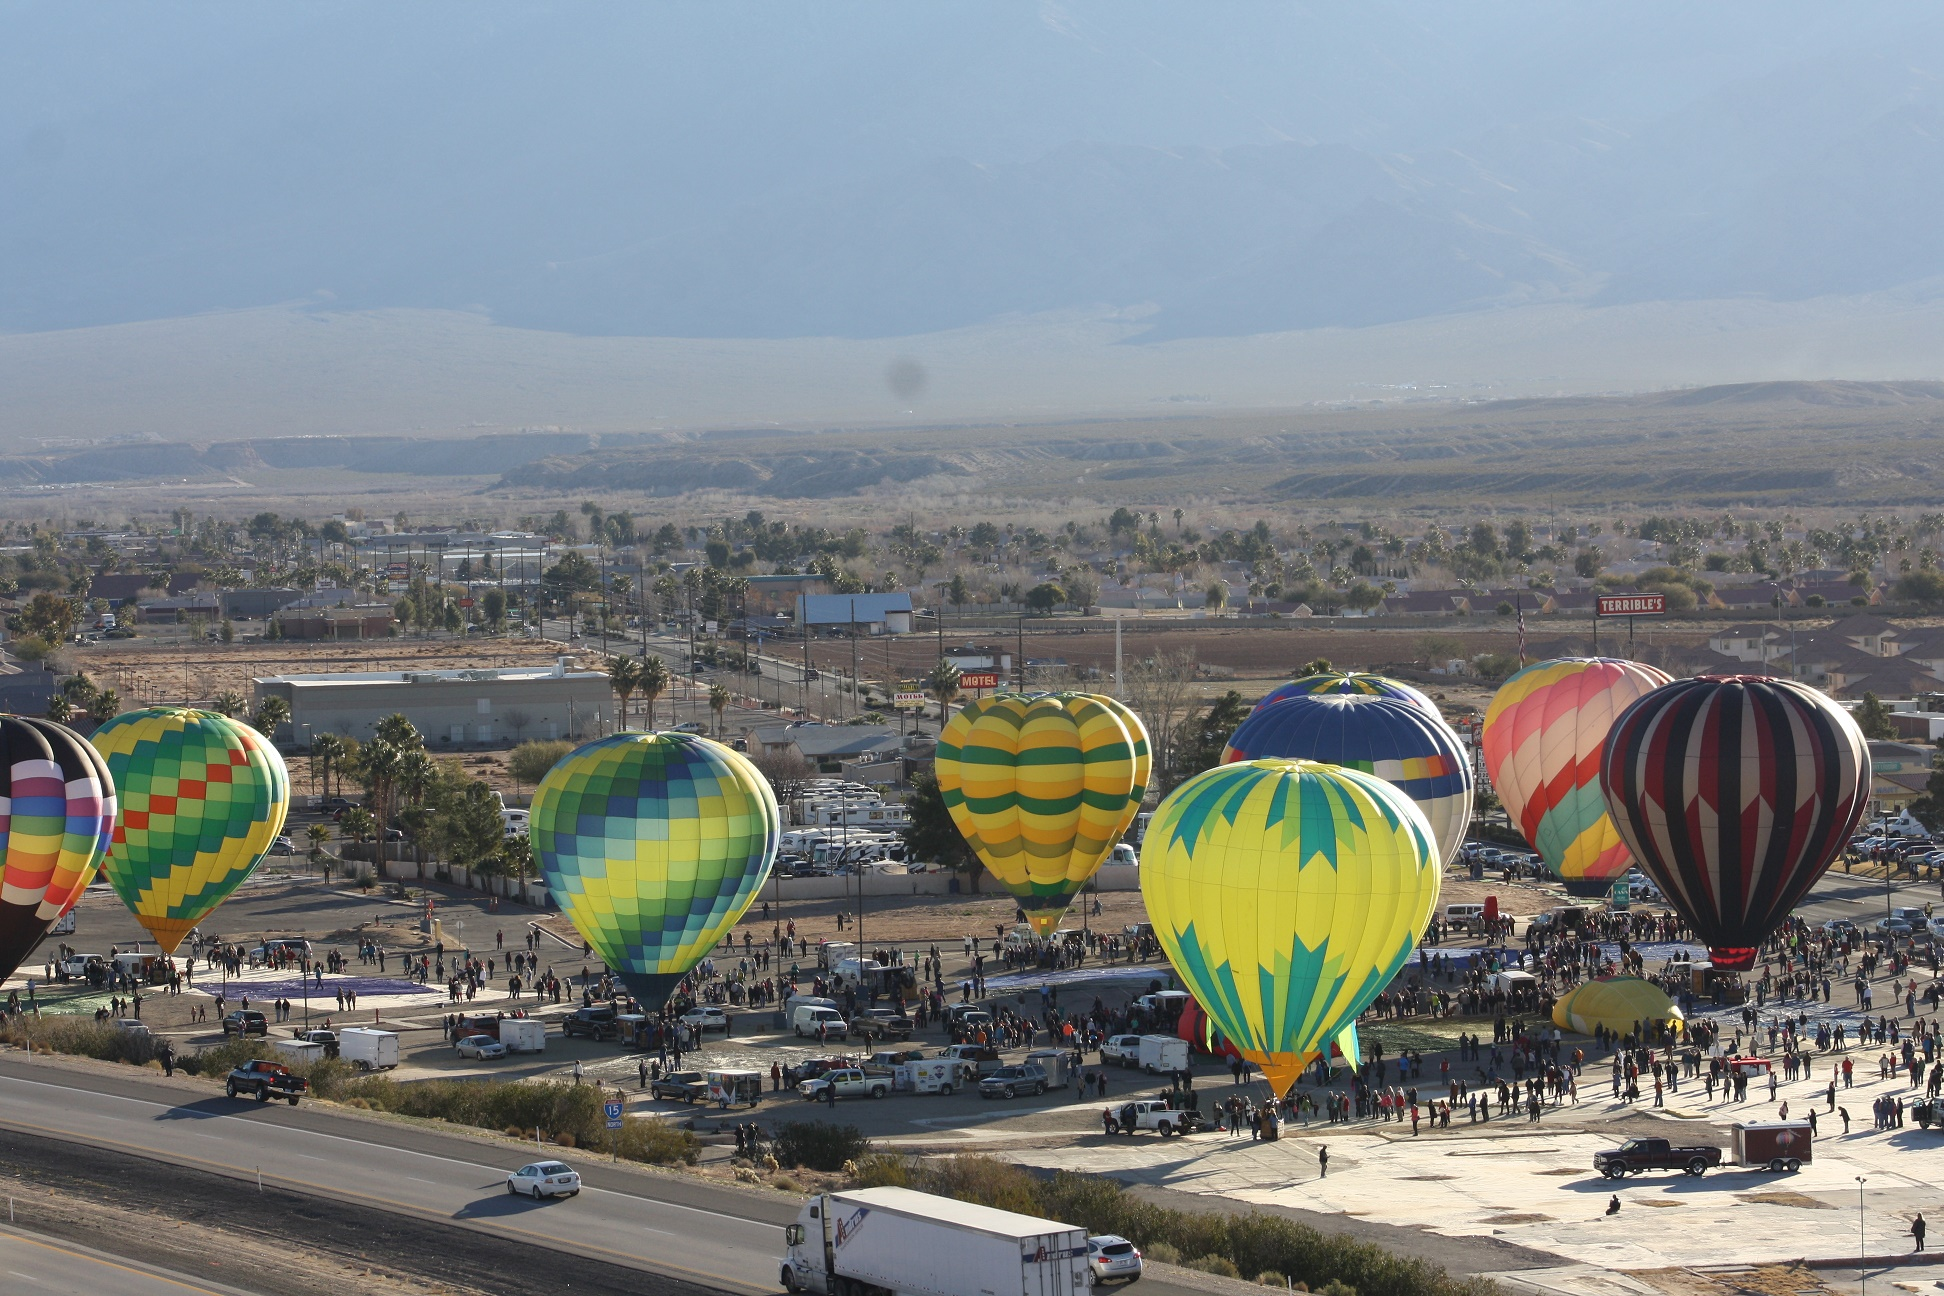 Mesquite Gaming calls on volunteers in the community for its annual Mesquite Hot Air Balloon Festival